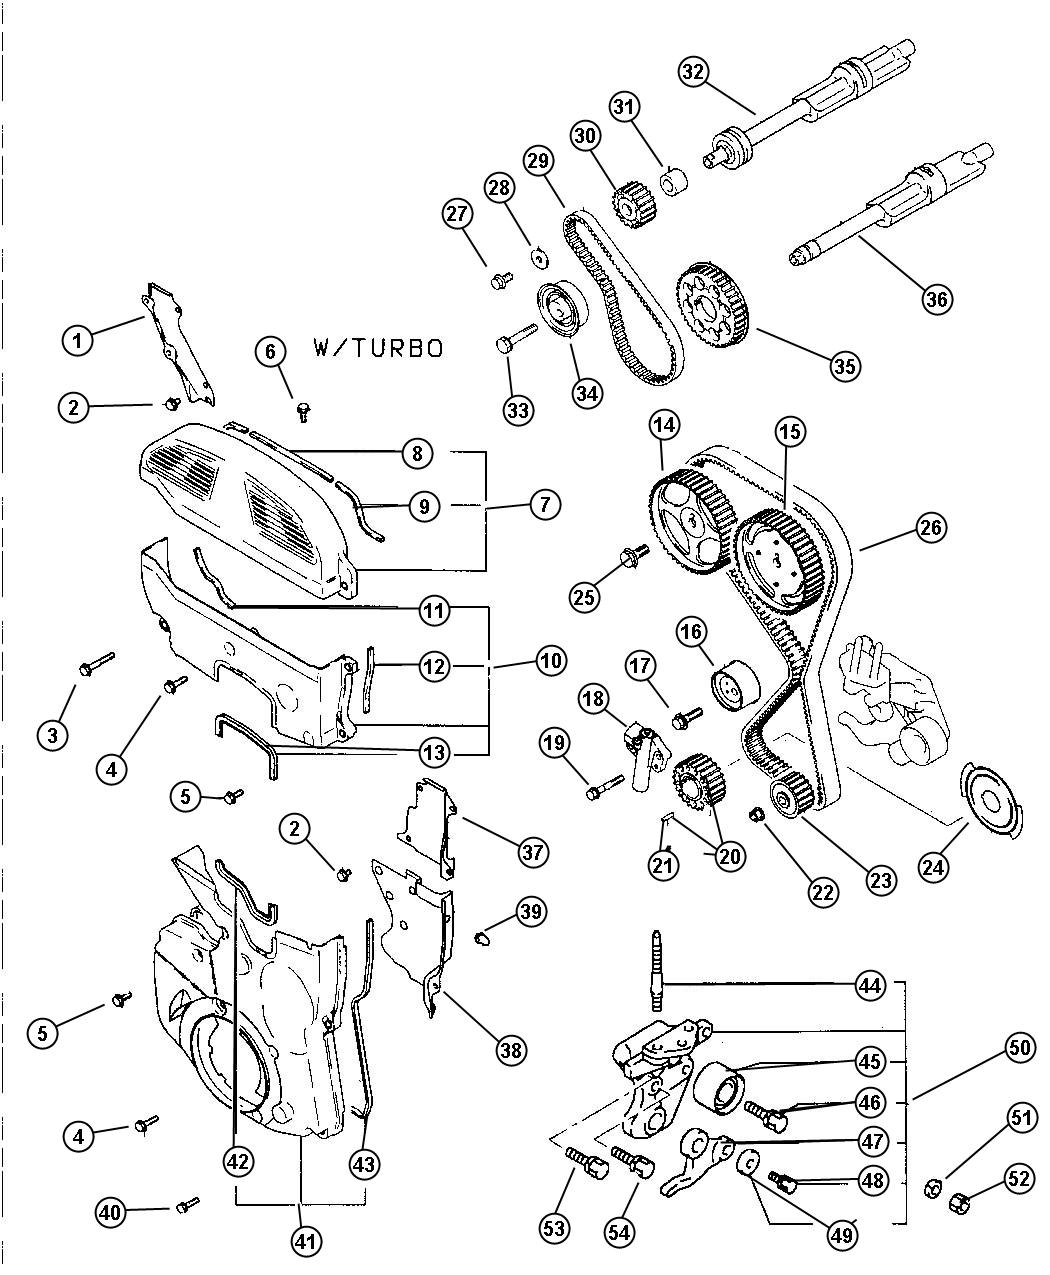 92 Toyota Tercel Parts Diagram. Toyota. Auto Wiring Diagram